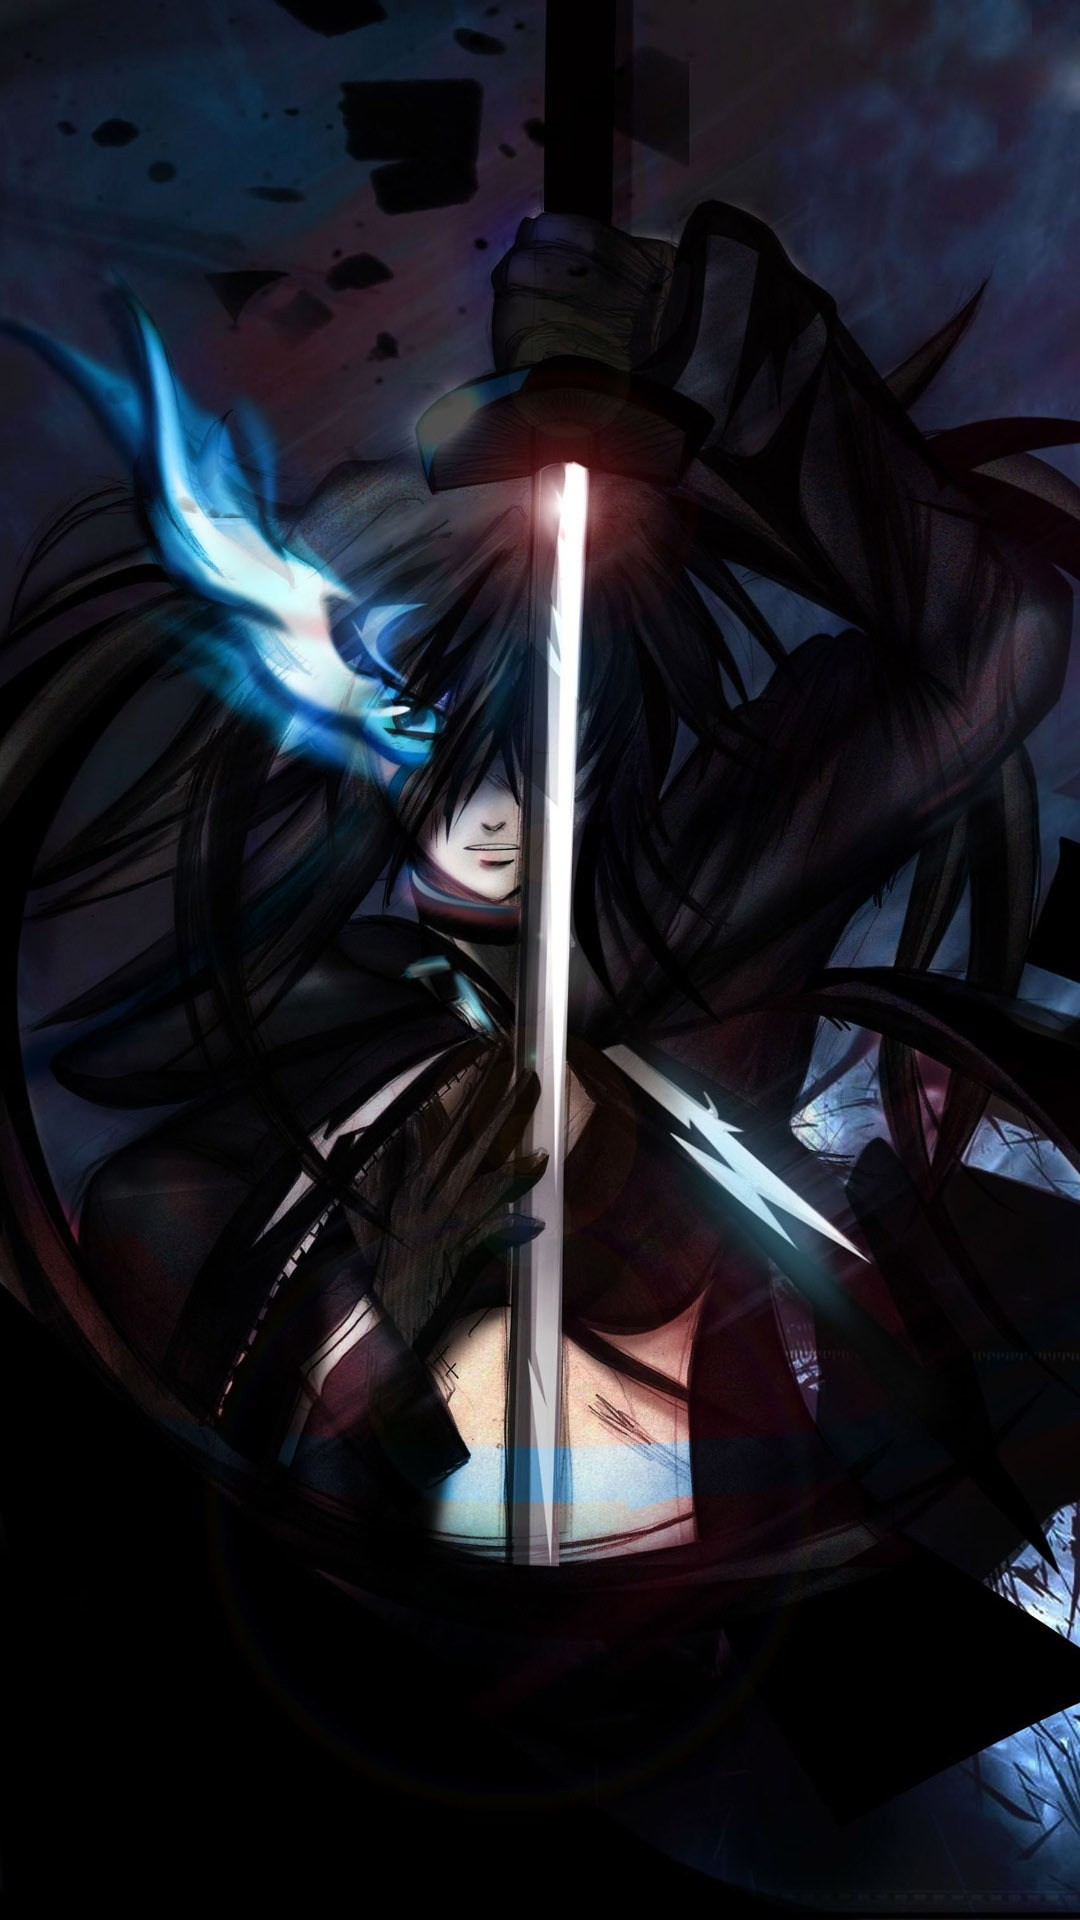 Anime Iphone 6 Wallpapers Hd And Anime Iphone 6 Plus Hd